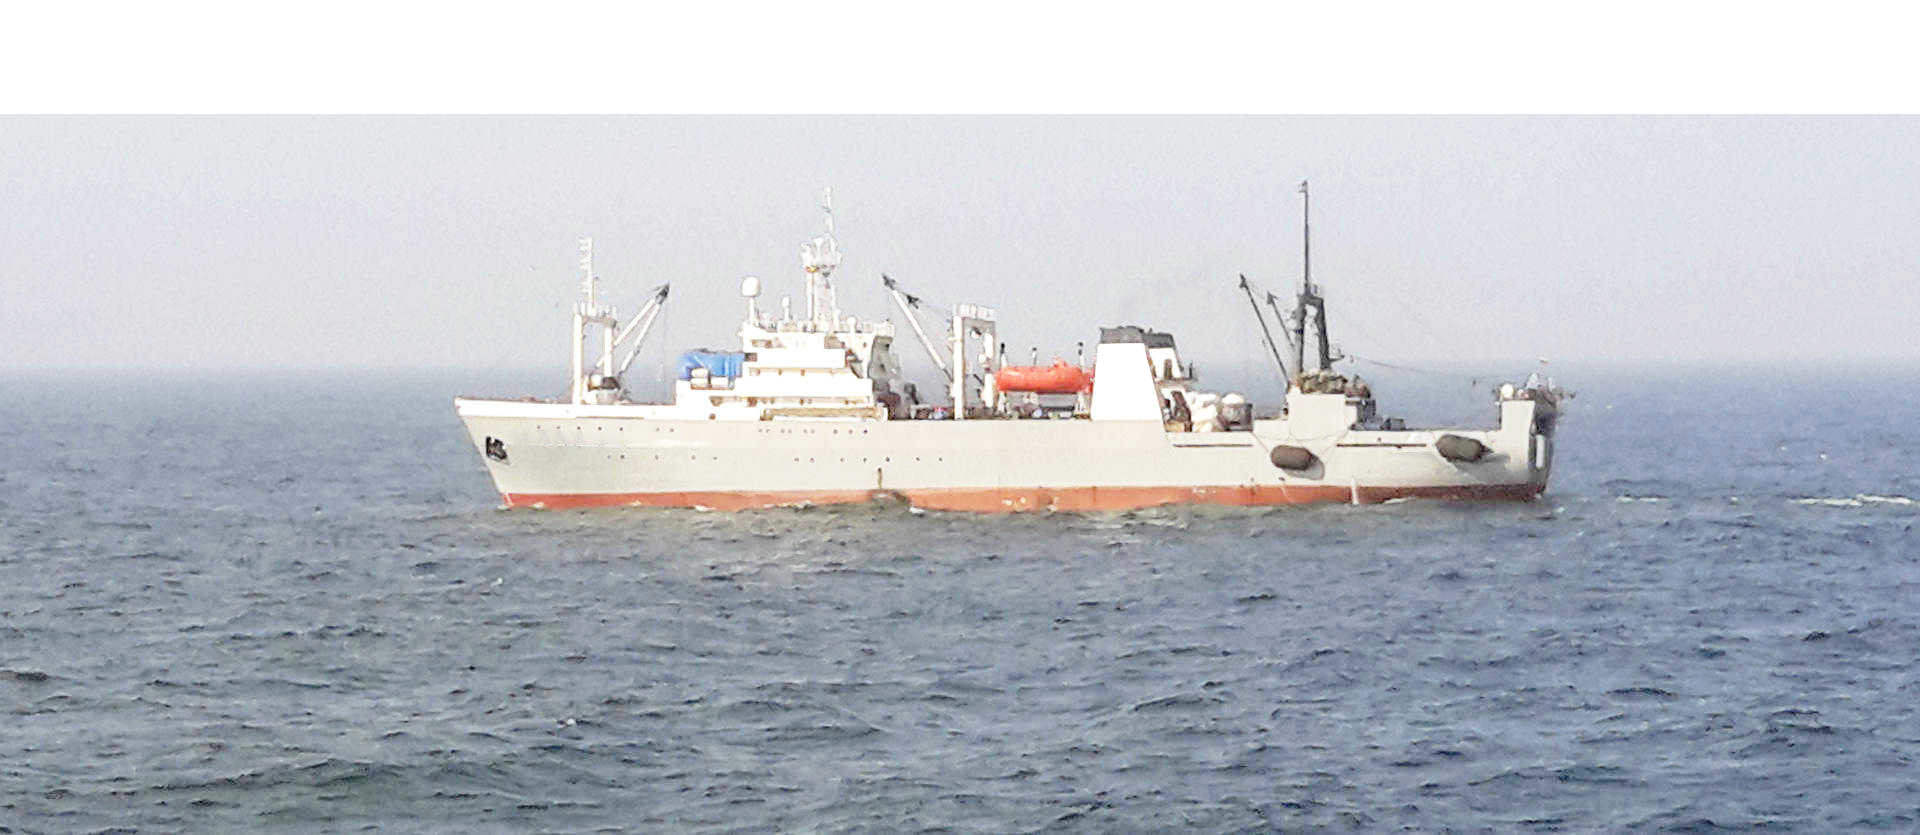 OPERATING FISHING VESSELS